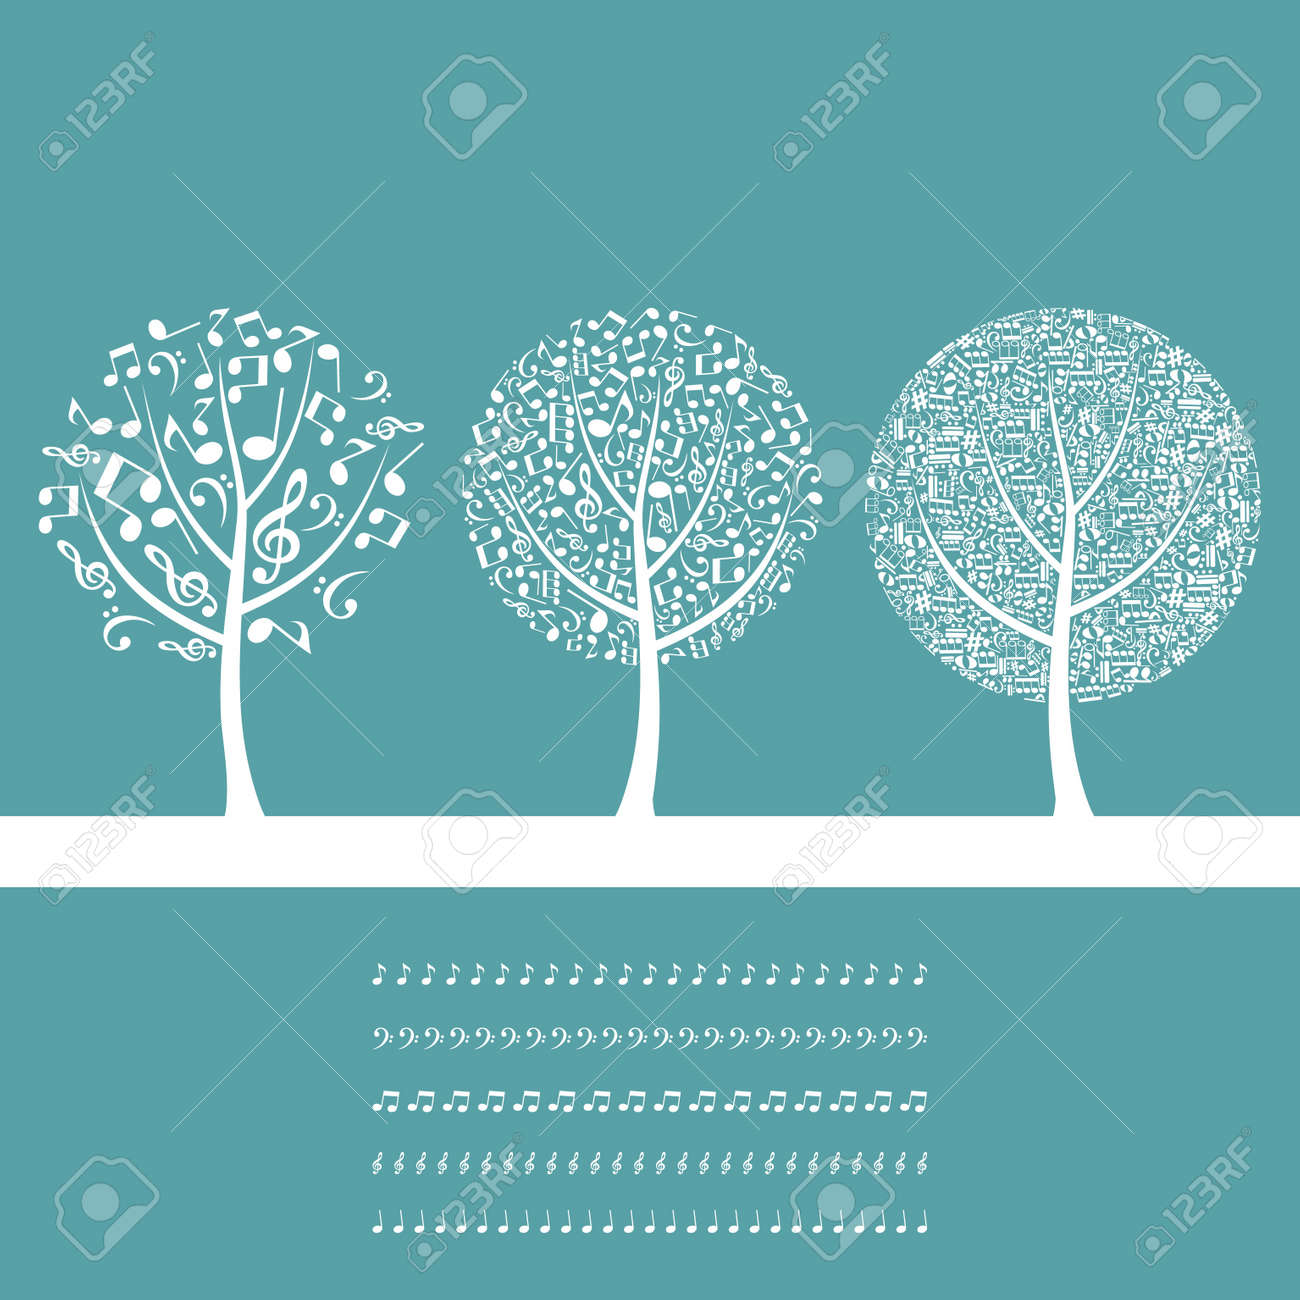 Three musical trees on a blue background Stock Vector - 14764556